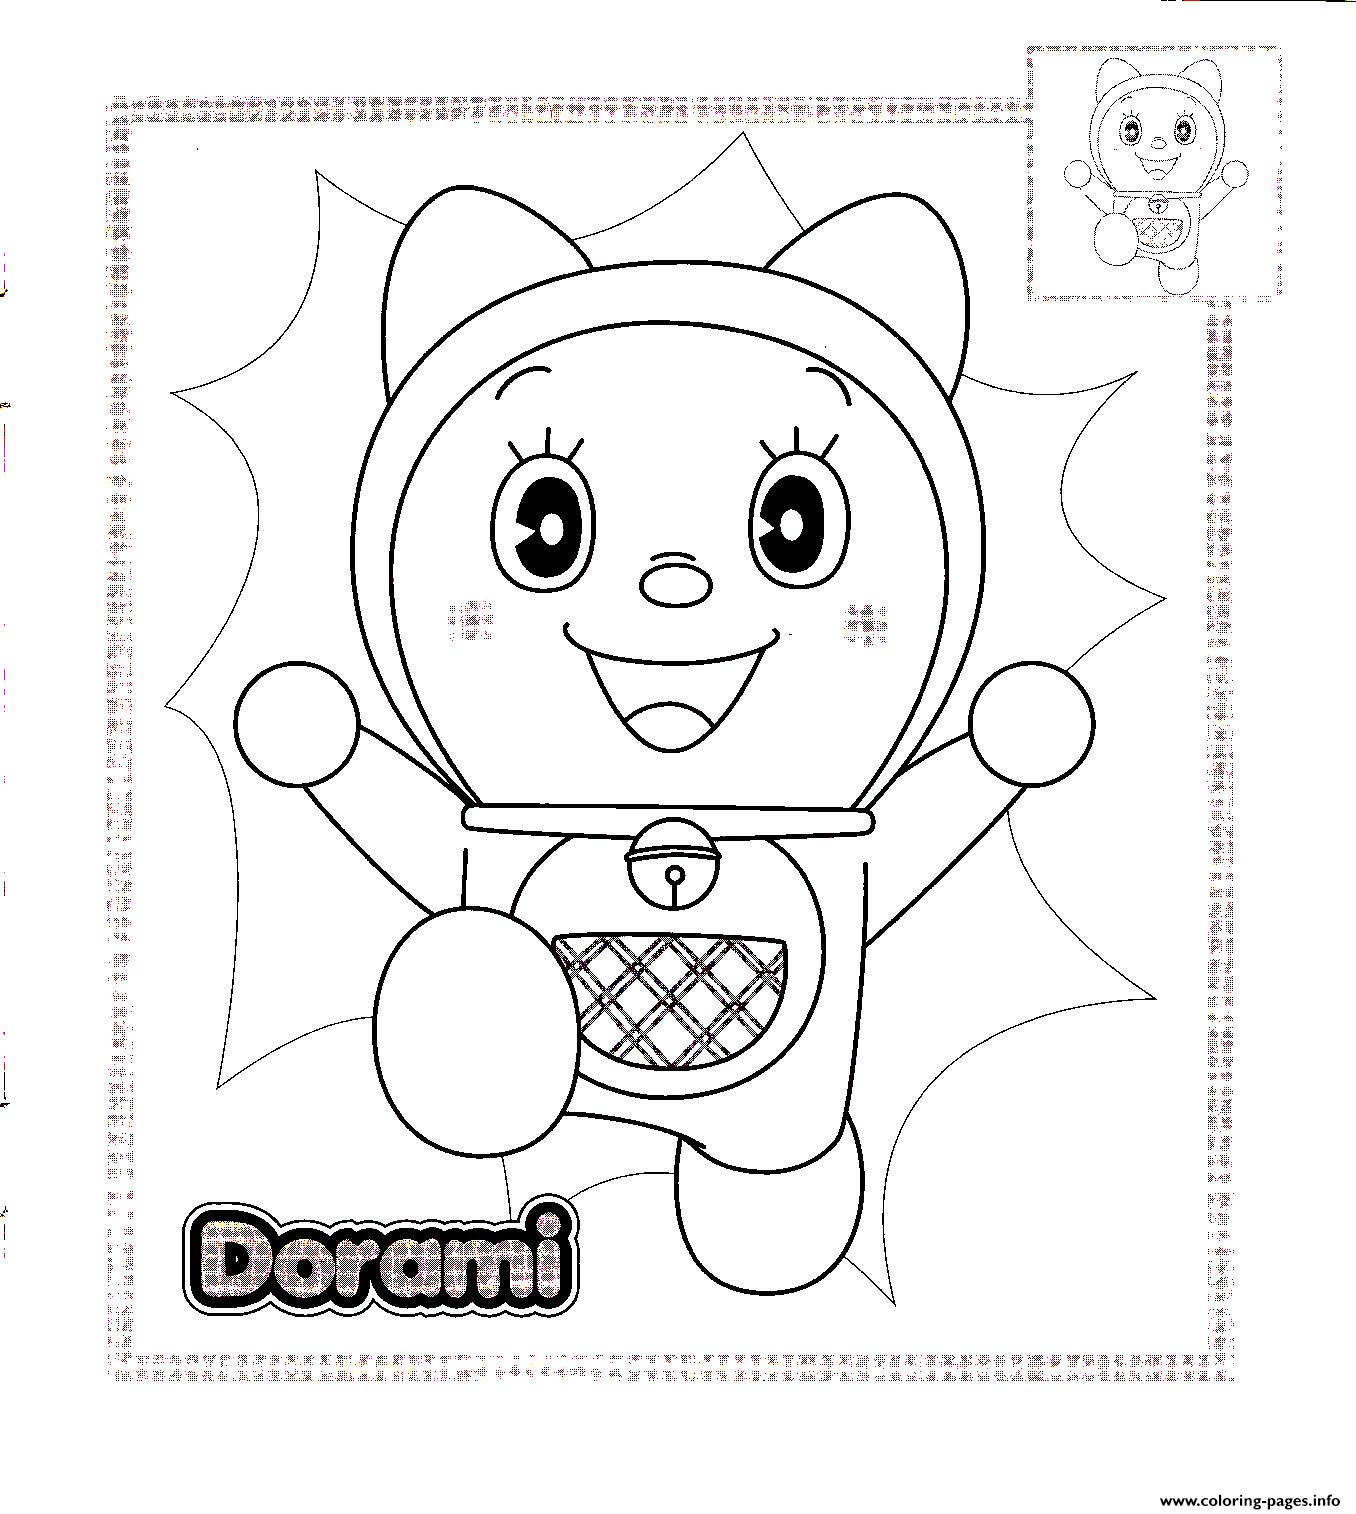 Dorami Doraemon Sb0b4 Coloring Pages